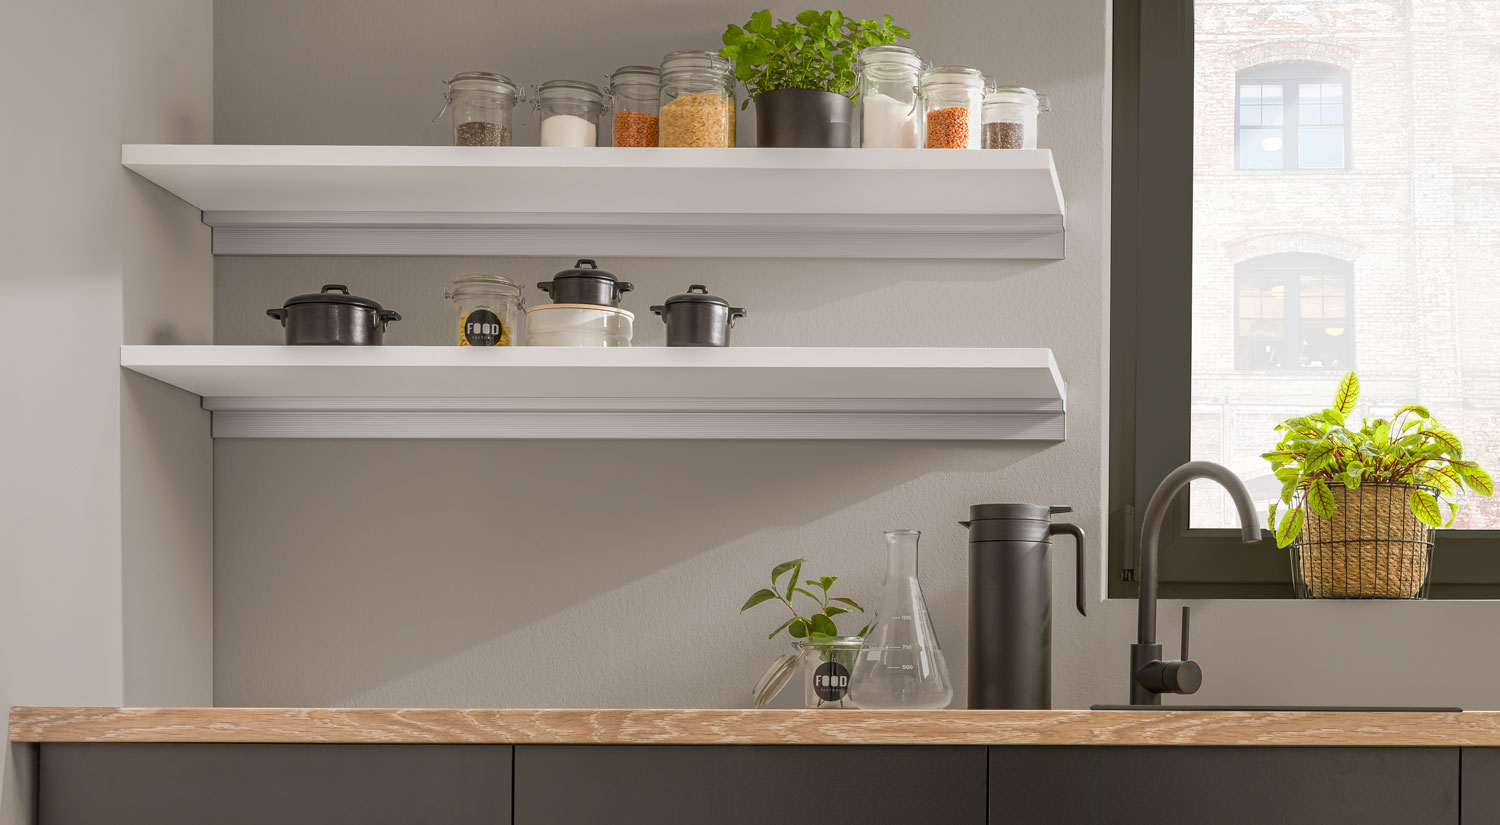 floating shelves sumo cube as kitchen shelf